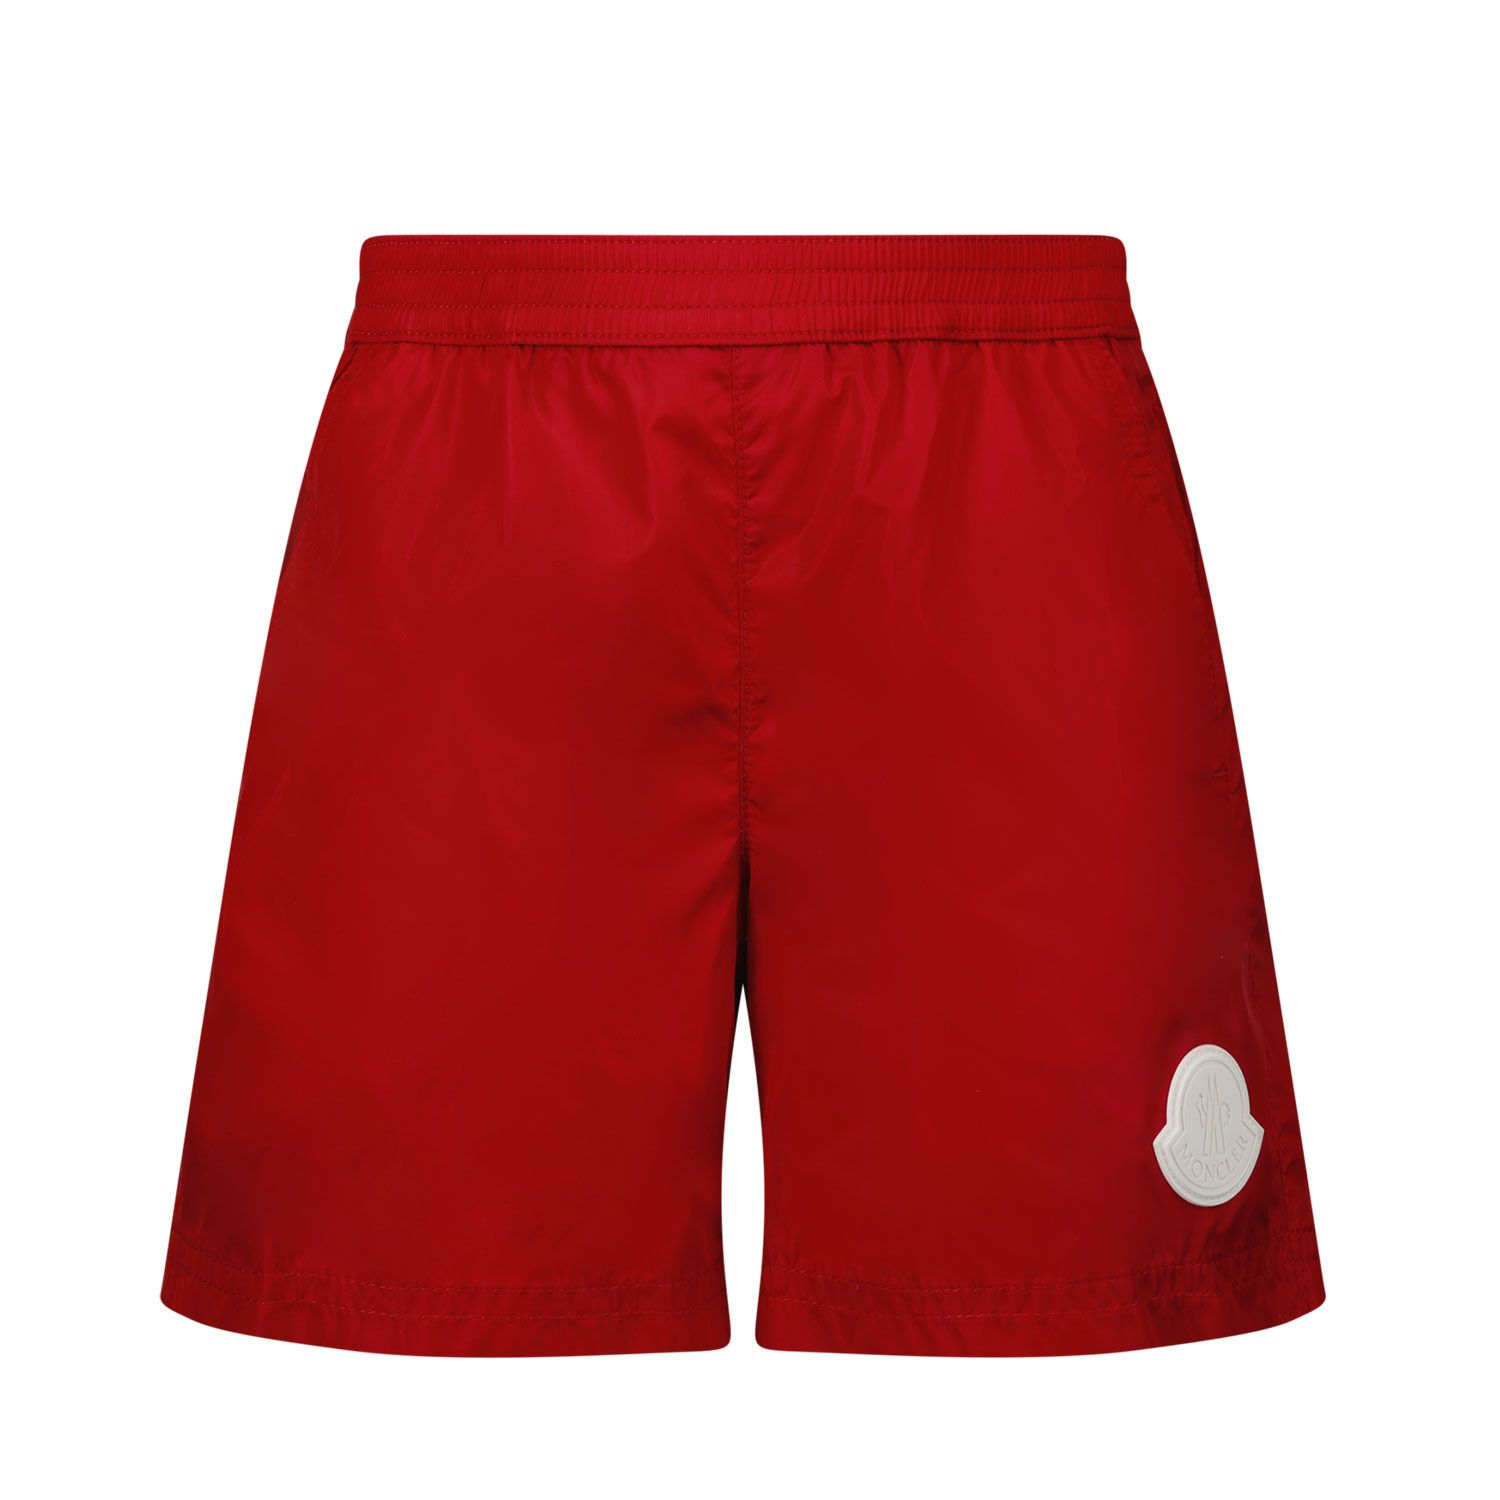 Picture of Moncler 2C70420 baby swimwear red